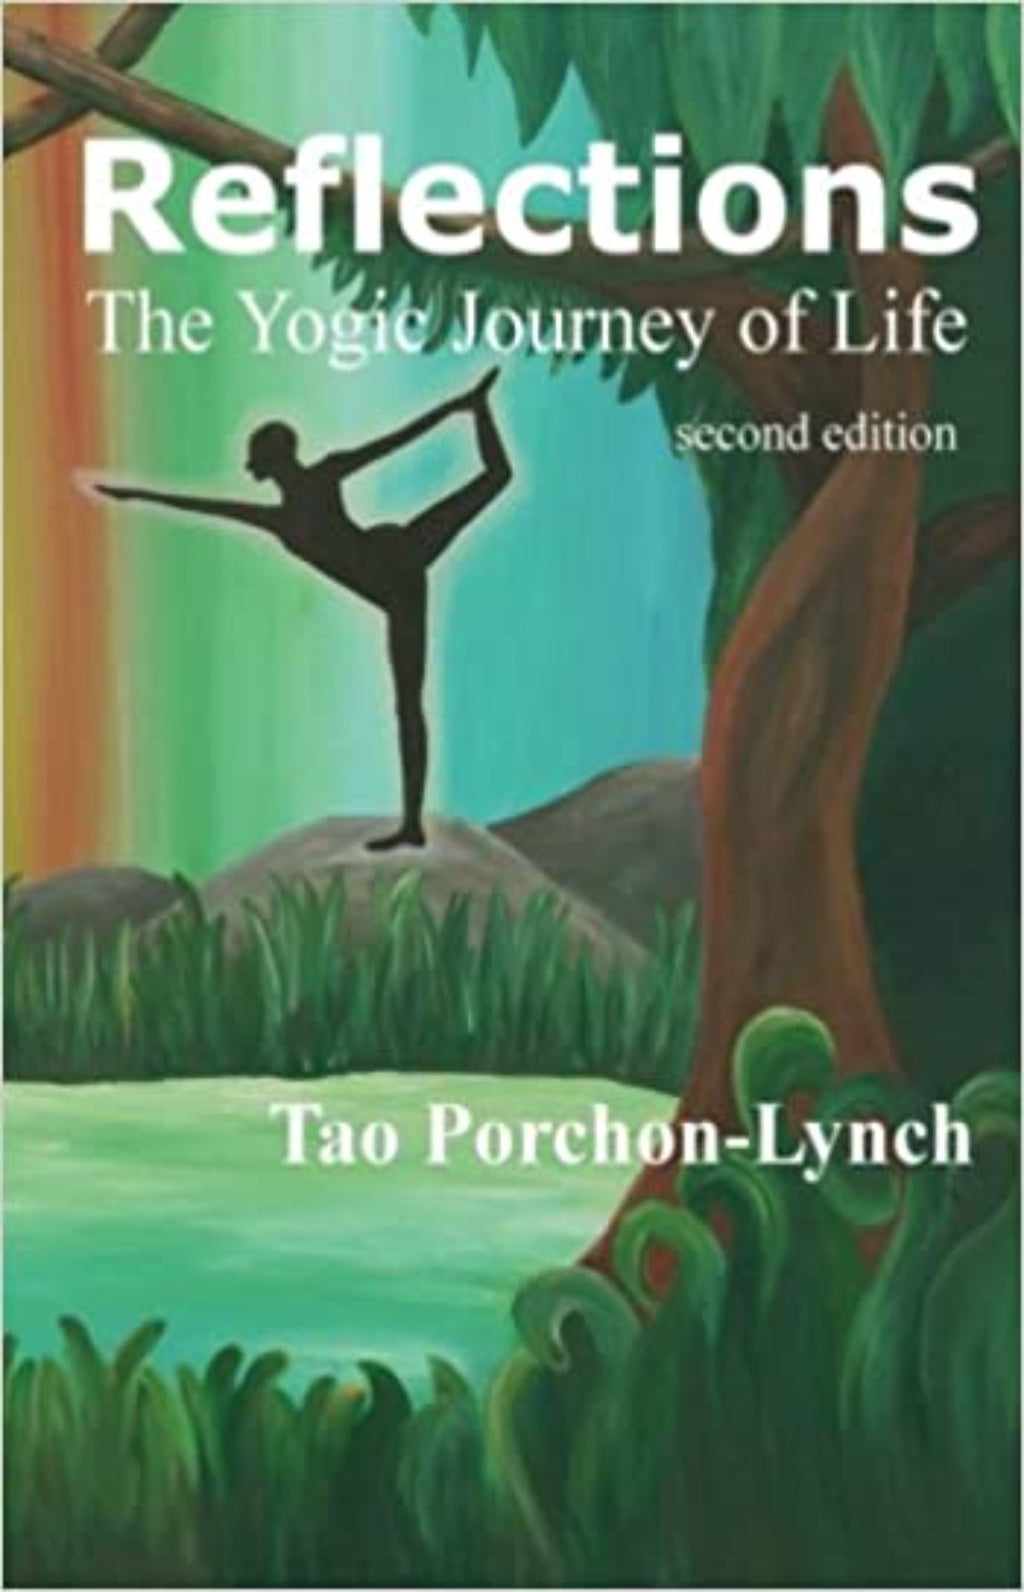 Reflections : The Yogic Journey of Life